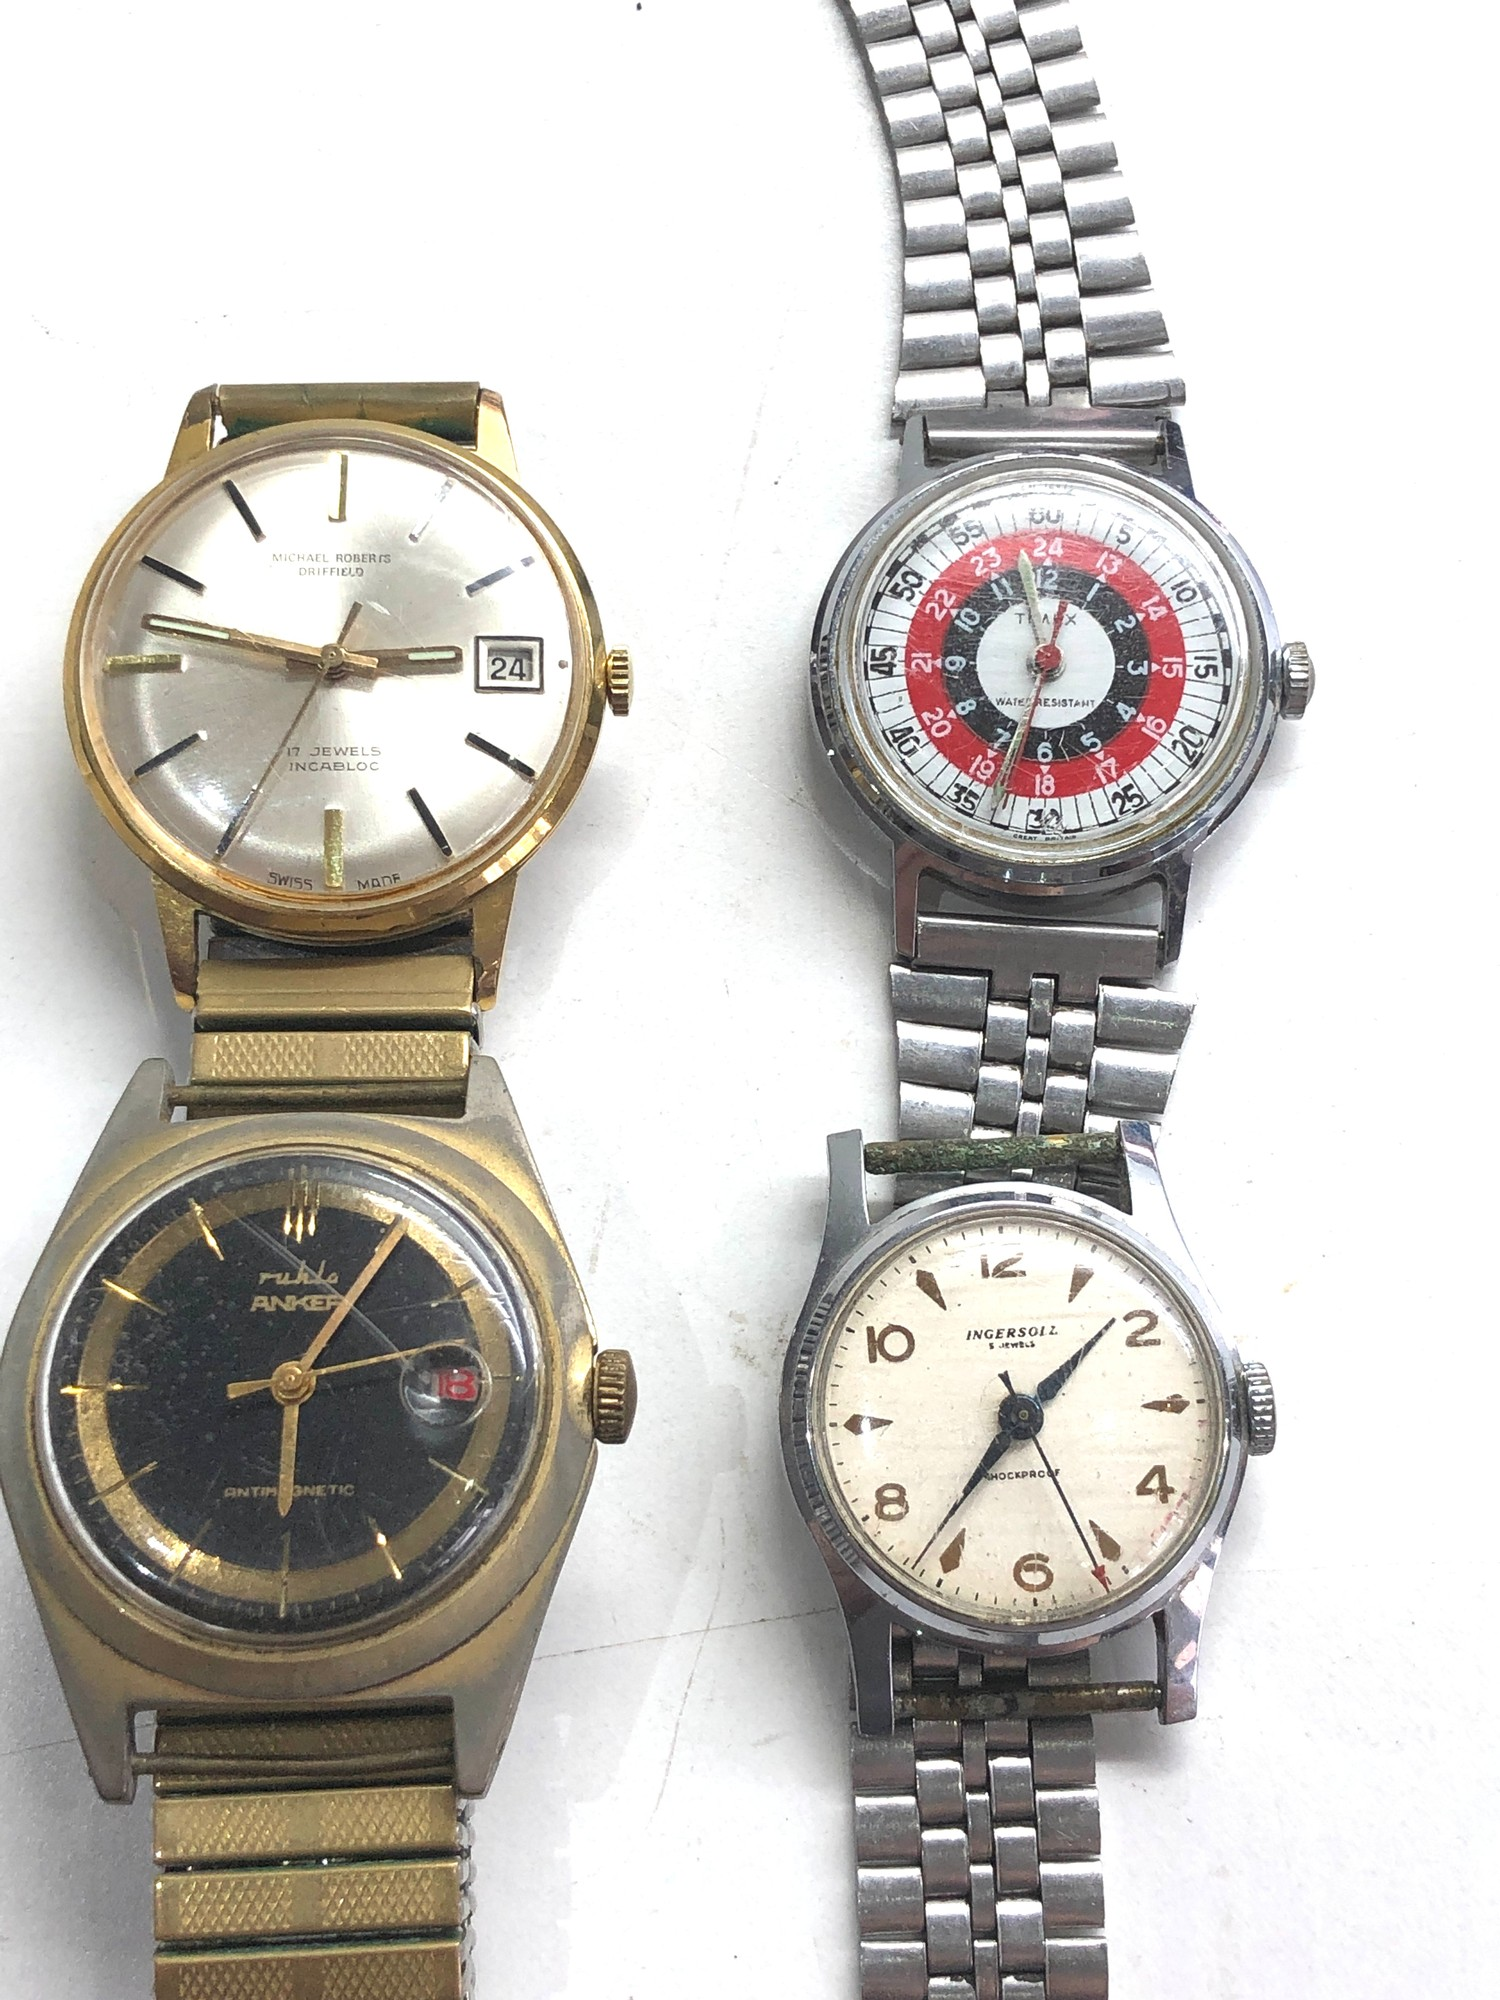 Selection of 4 vintage gents wristwatches includes ingersoll timex ruhla and michael roberts